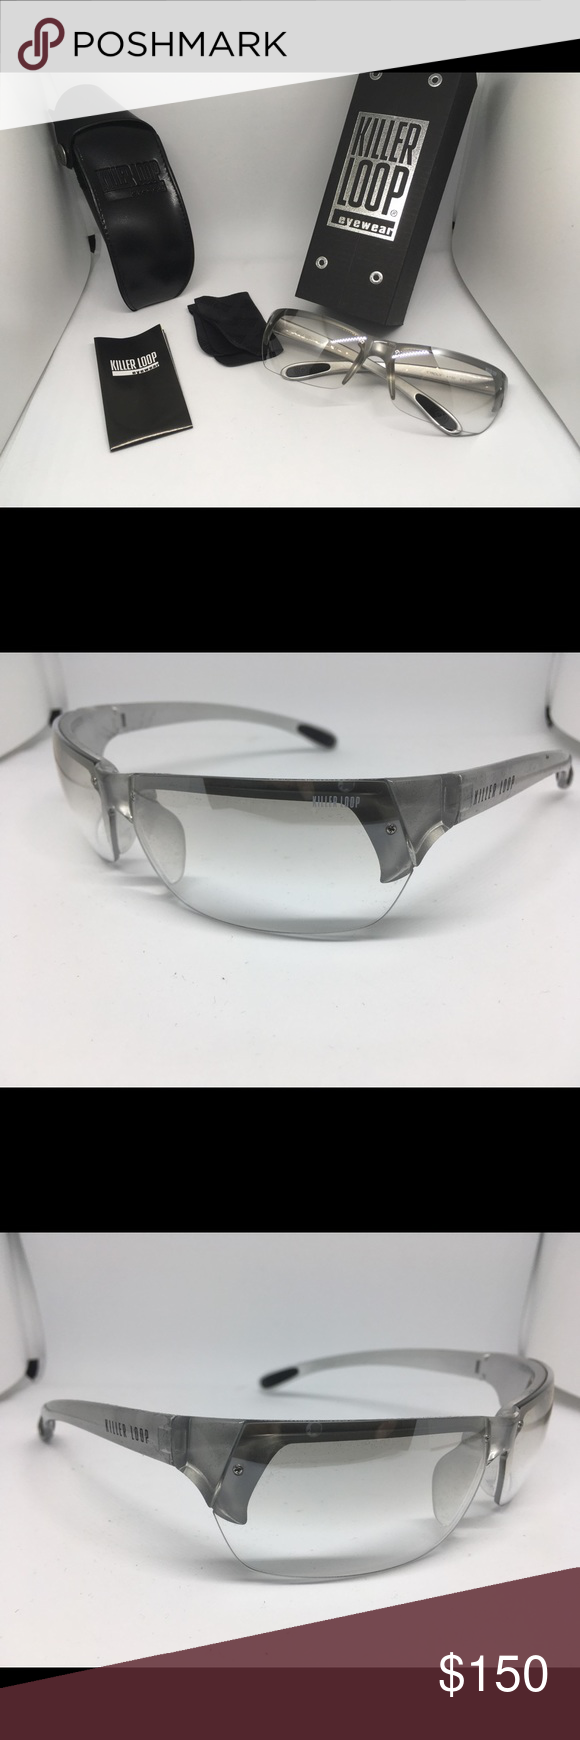 100 /% UV BRAND NEW KILLER LOOP sun glasses with box MADE IN ITALY